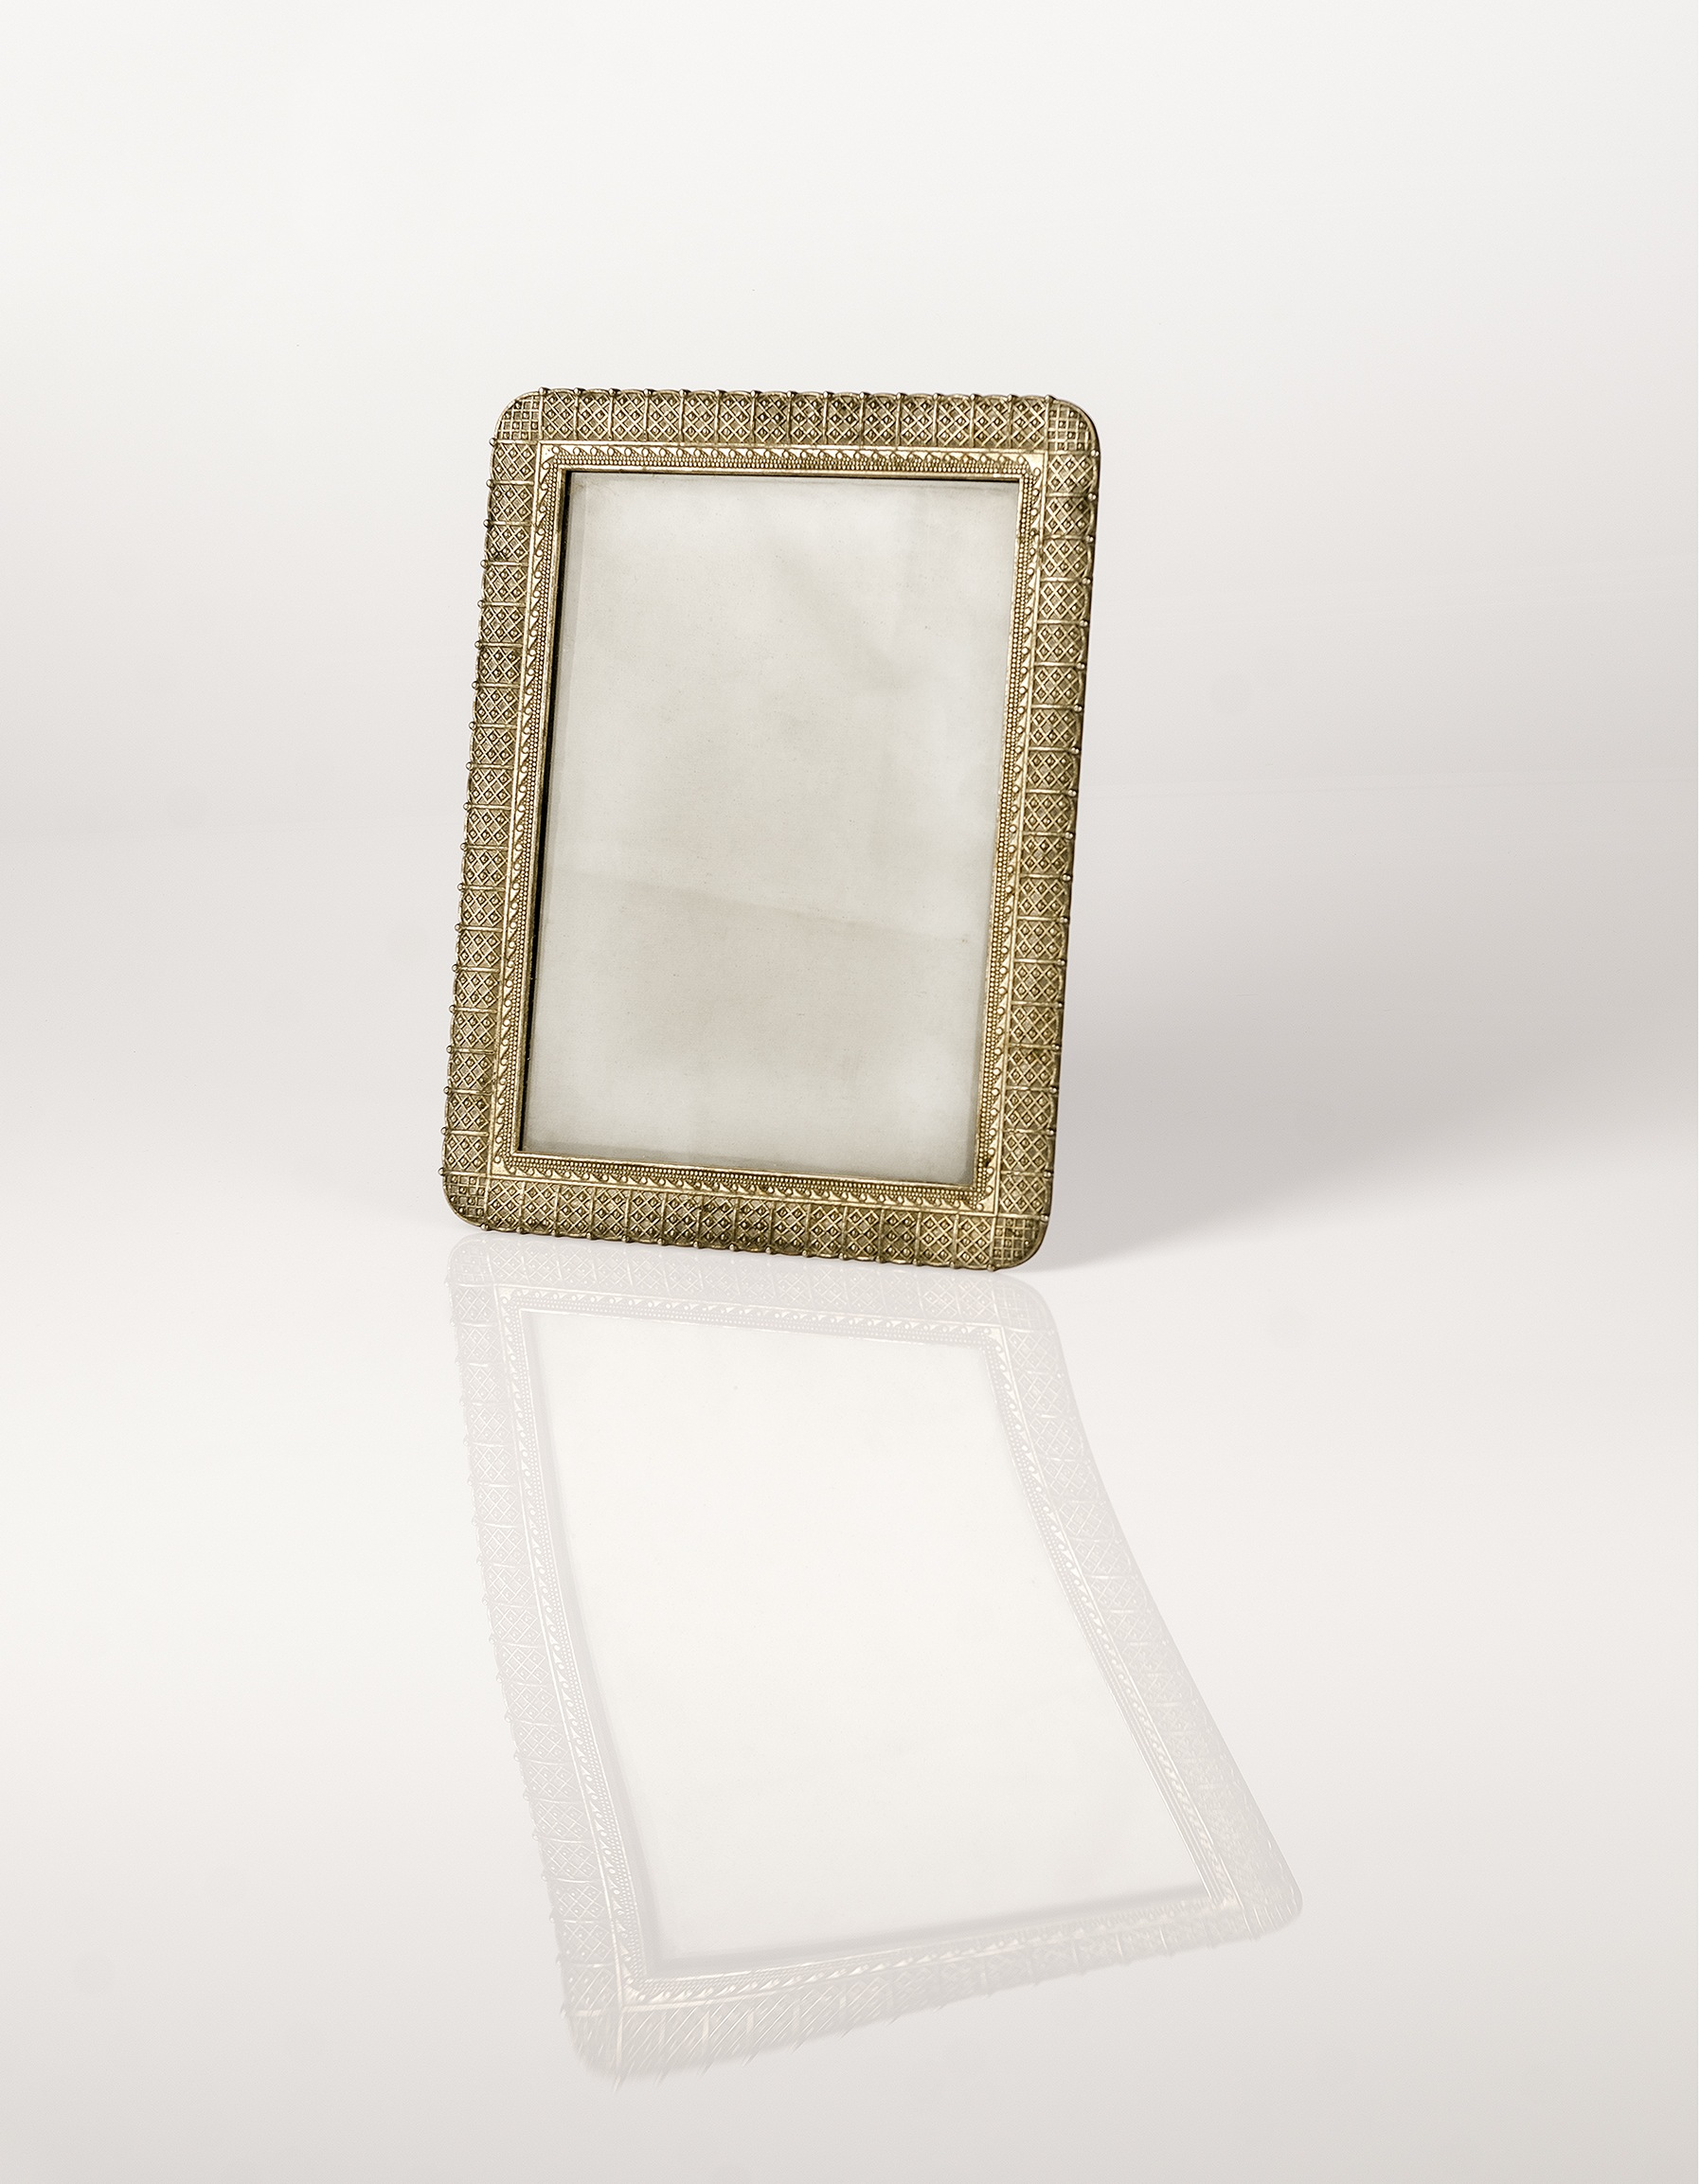 Her broken antique ornate silver frame where she once displayed her own or husband's old black and white photograph  (Contents of her bedside drawer series),2016